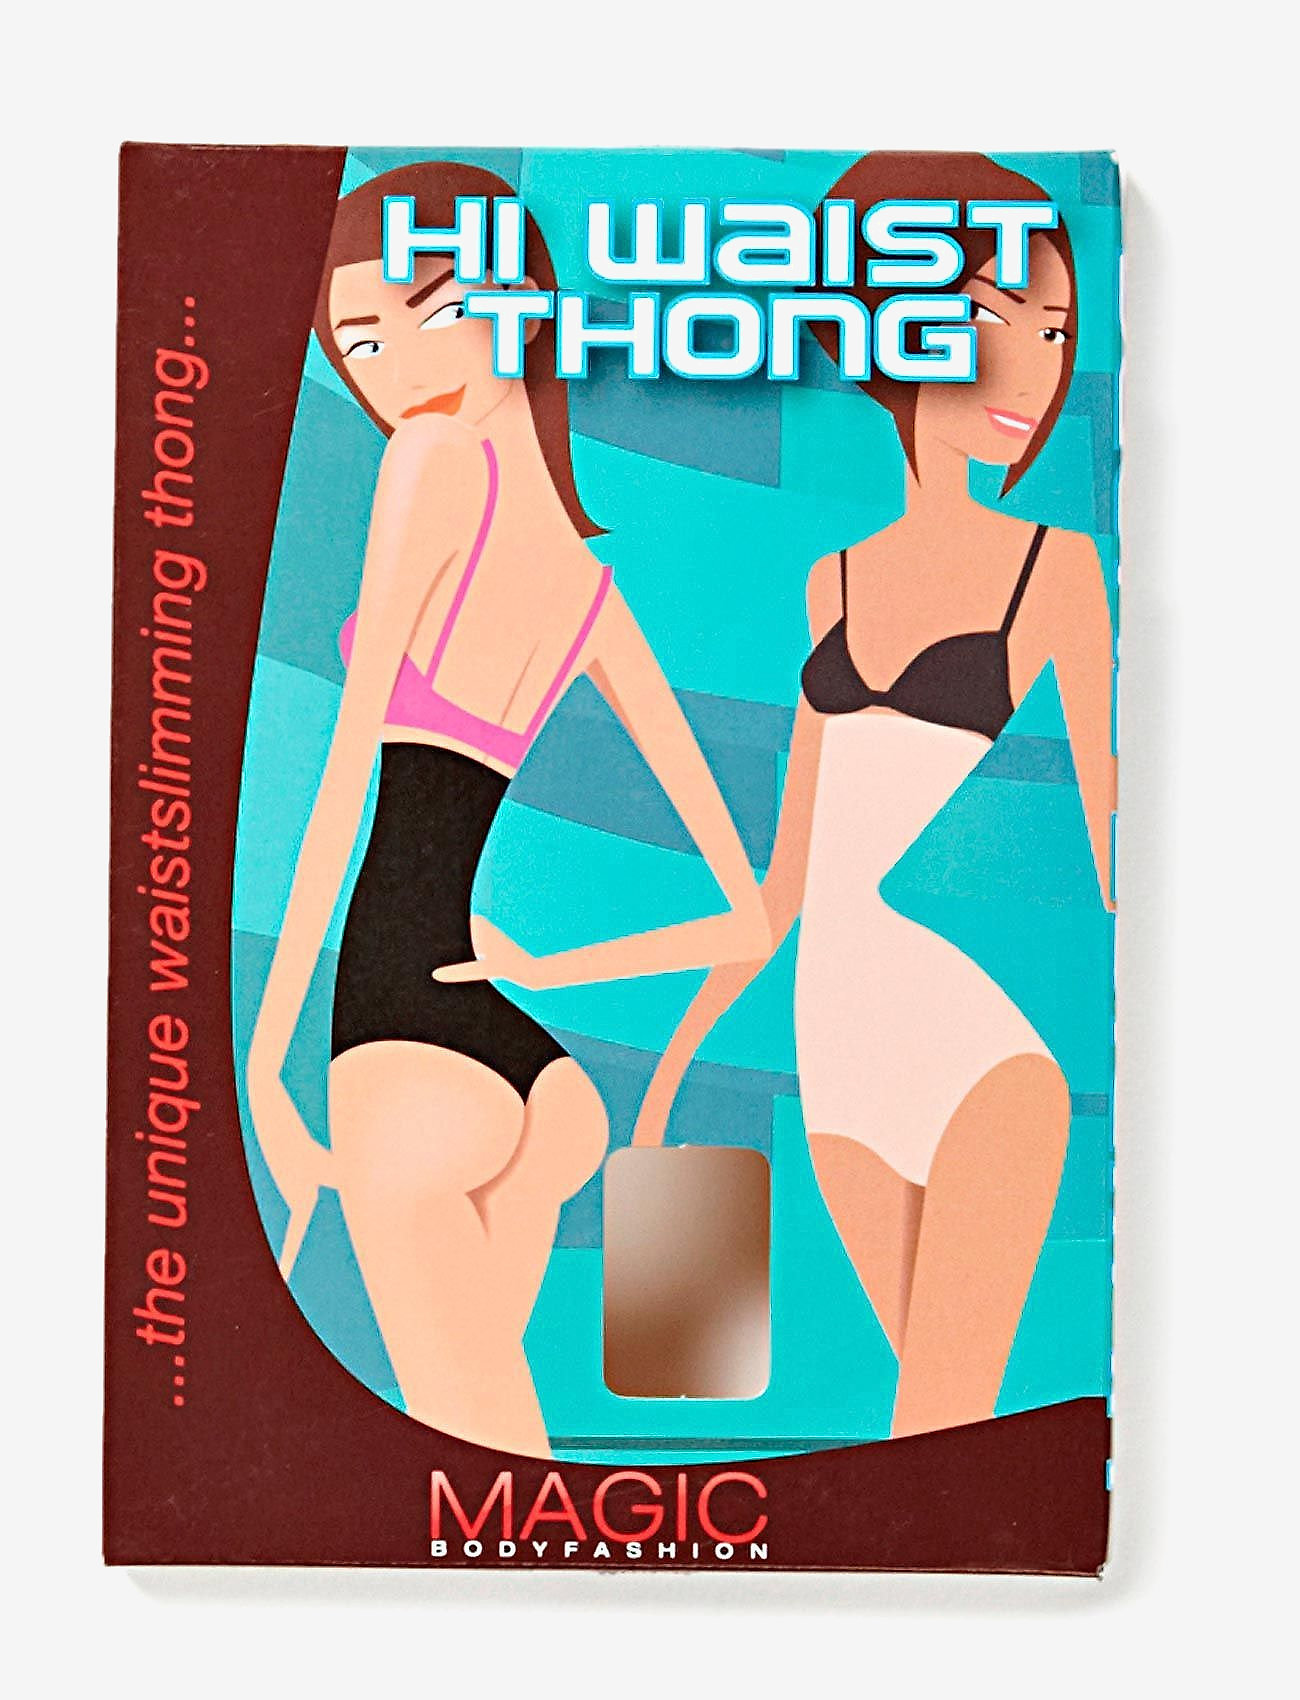 Magic Bodyfashion - Hi Waist Thong - bottoms - skin